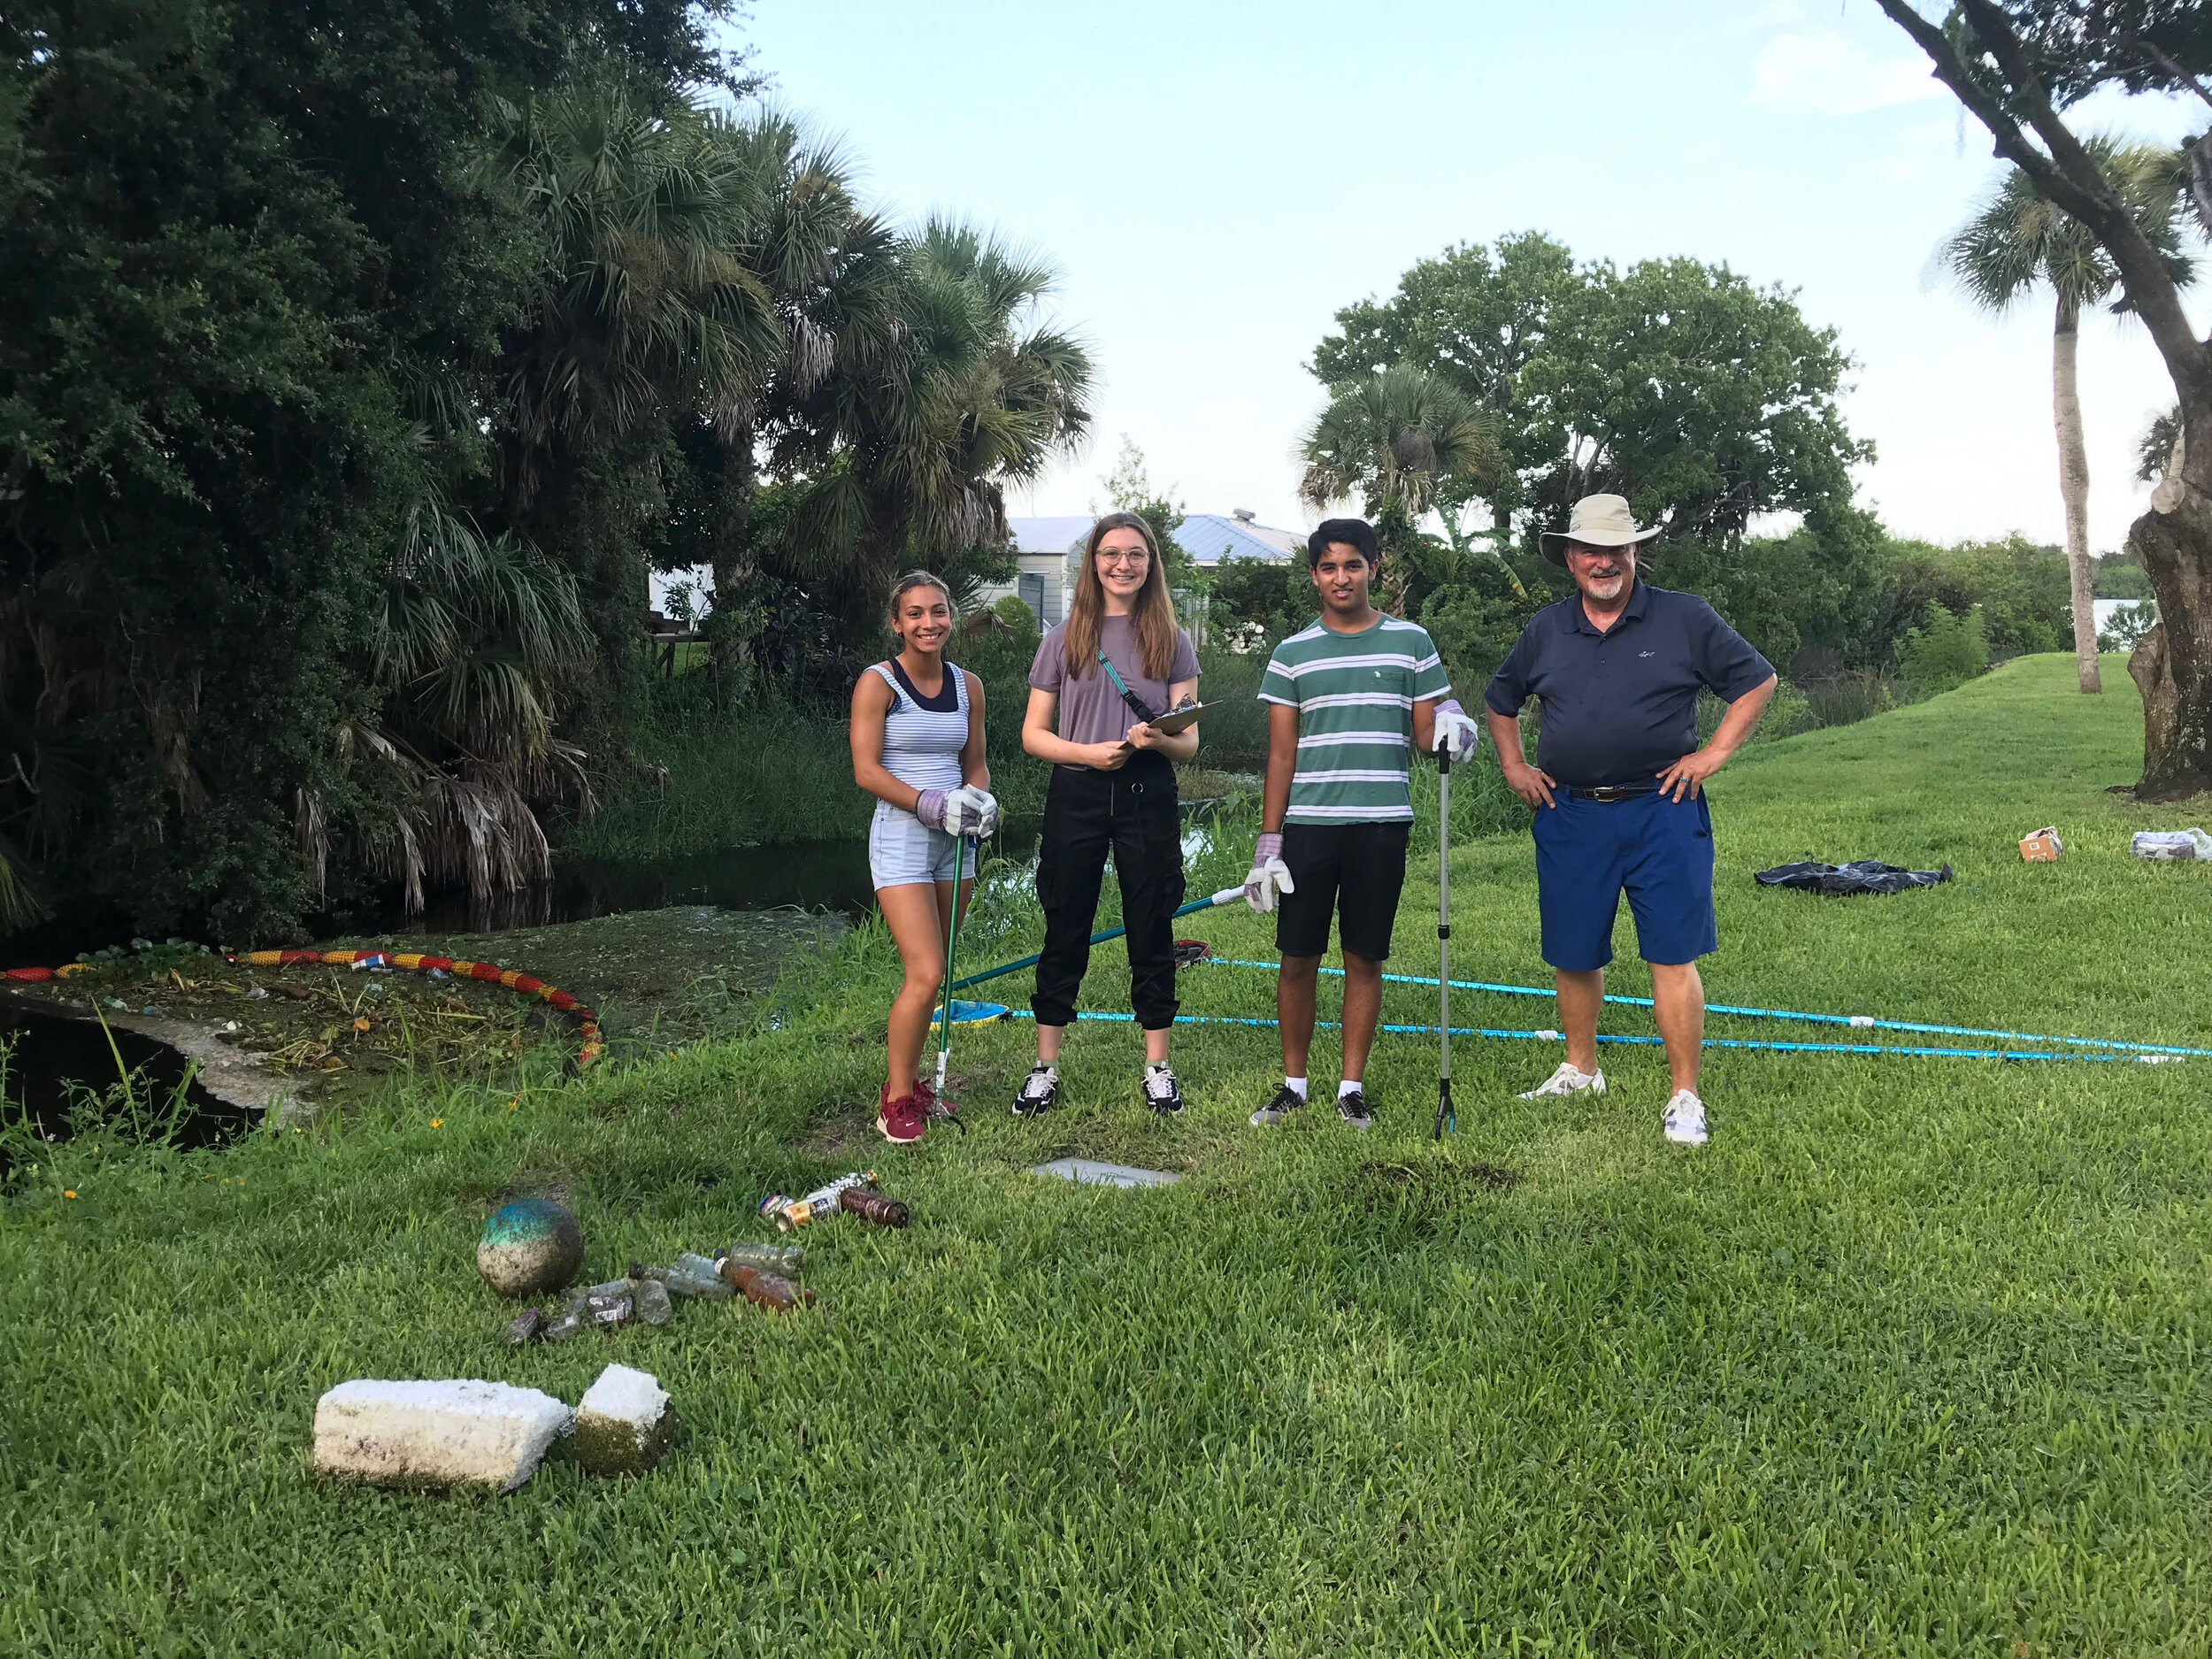 Riverside Young Leaders in Conservation - Victoria Valdez, Raegan Padula and Varune Hoskote track debris collected by the City of Edgewater's WaterGoat at Veterans Park with the assistance of Dr. Art Litowitz, Riverside Conservancy Board Director and Treasurer.